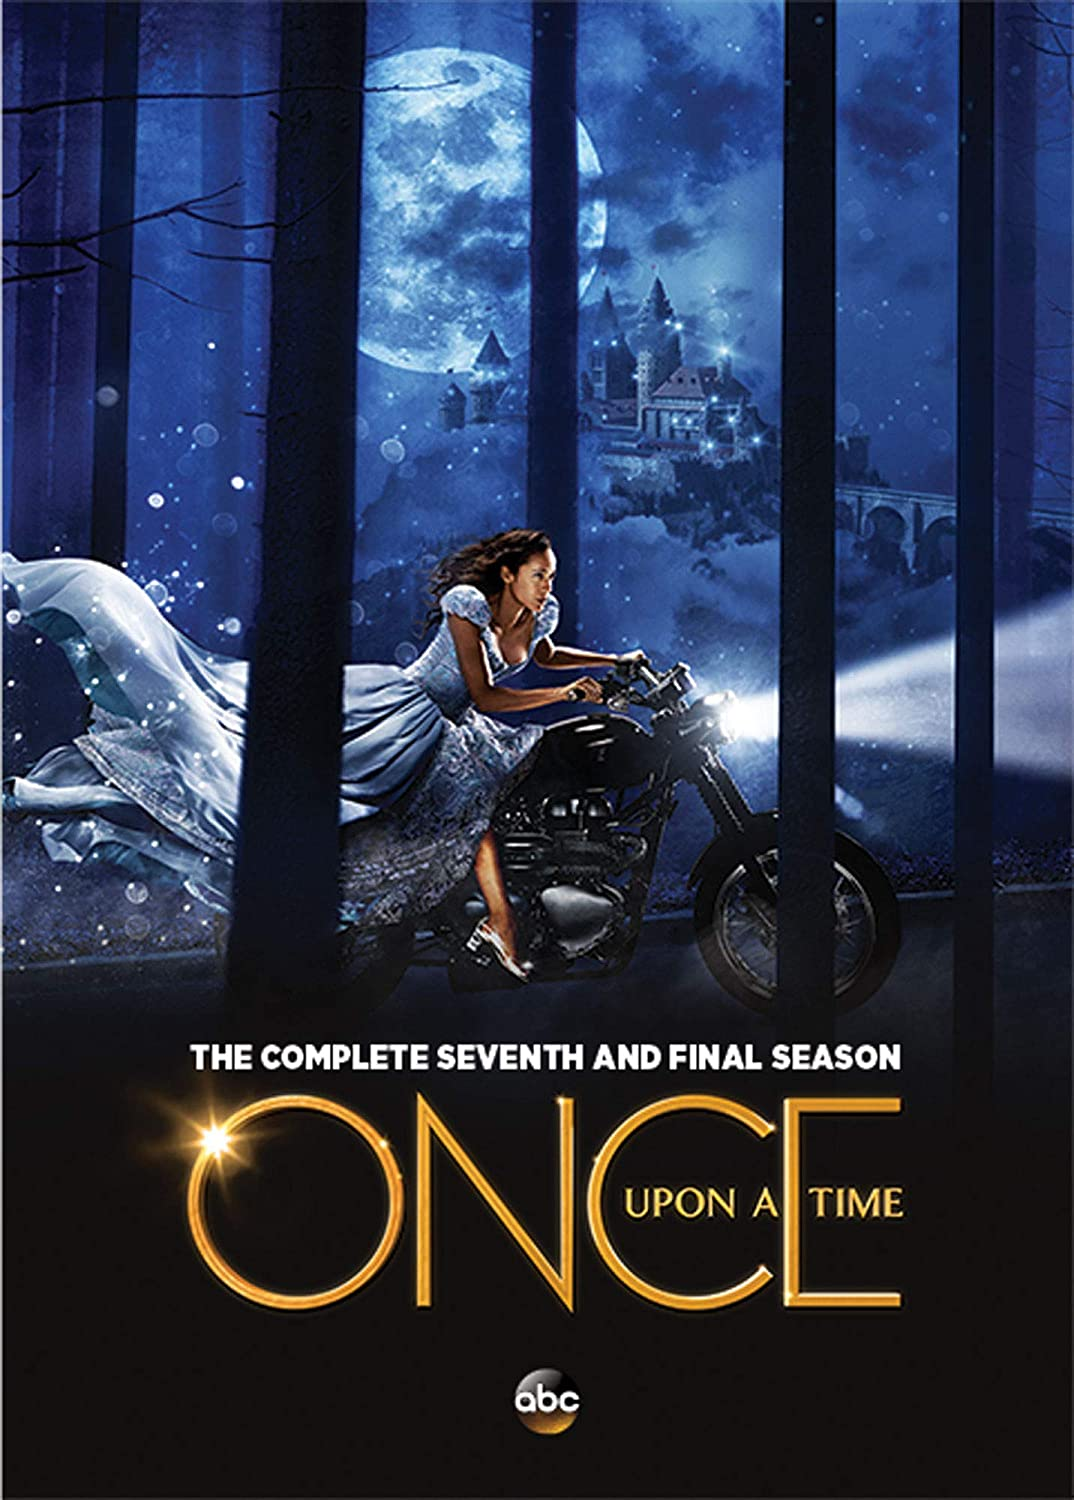 Once Upon a Time: The Complete Seventh and Final Season Lana Parrilla Colin O' Donoghue Robert Carlyle Andrew J. West